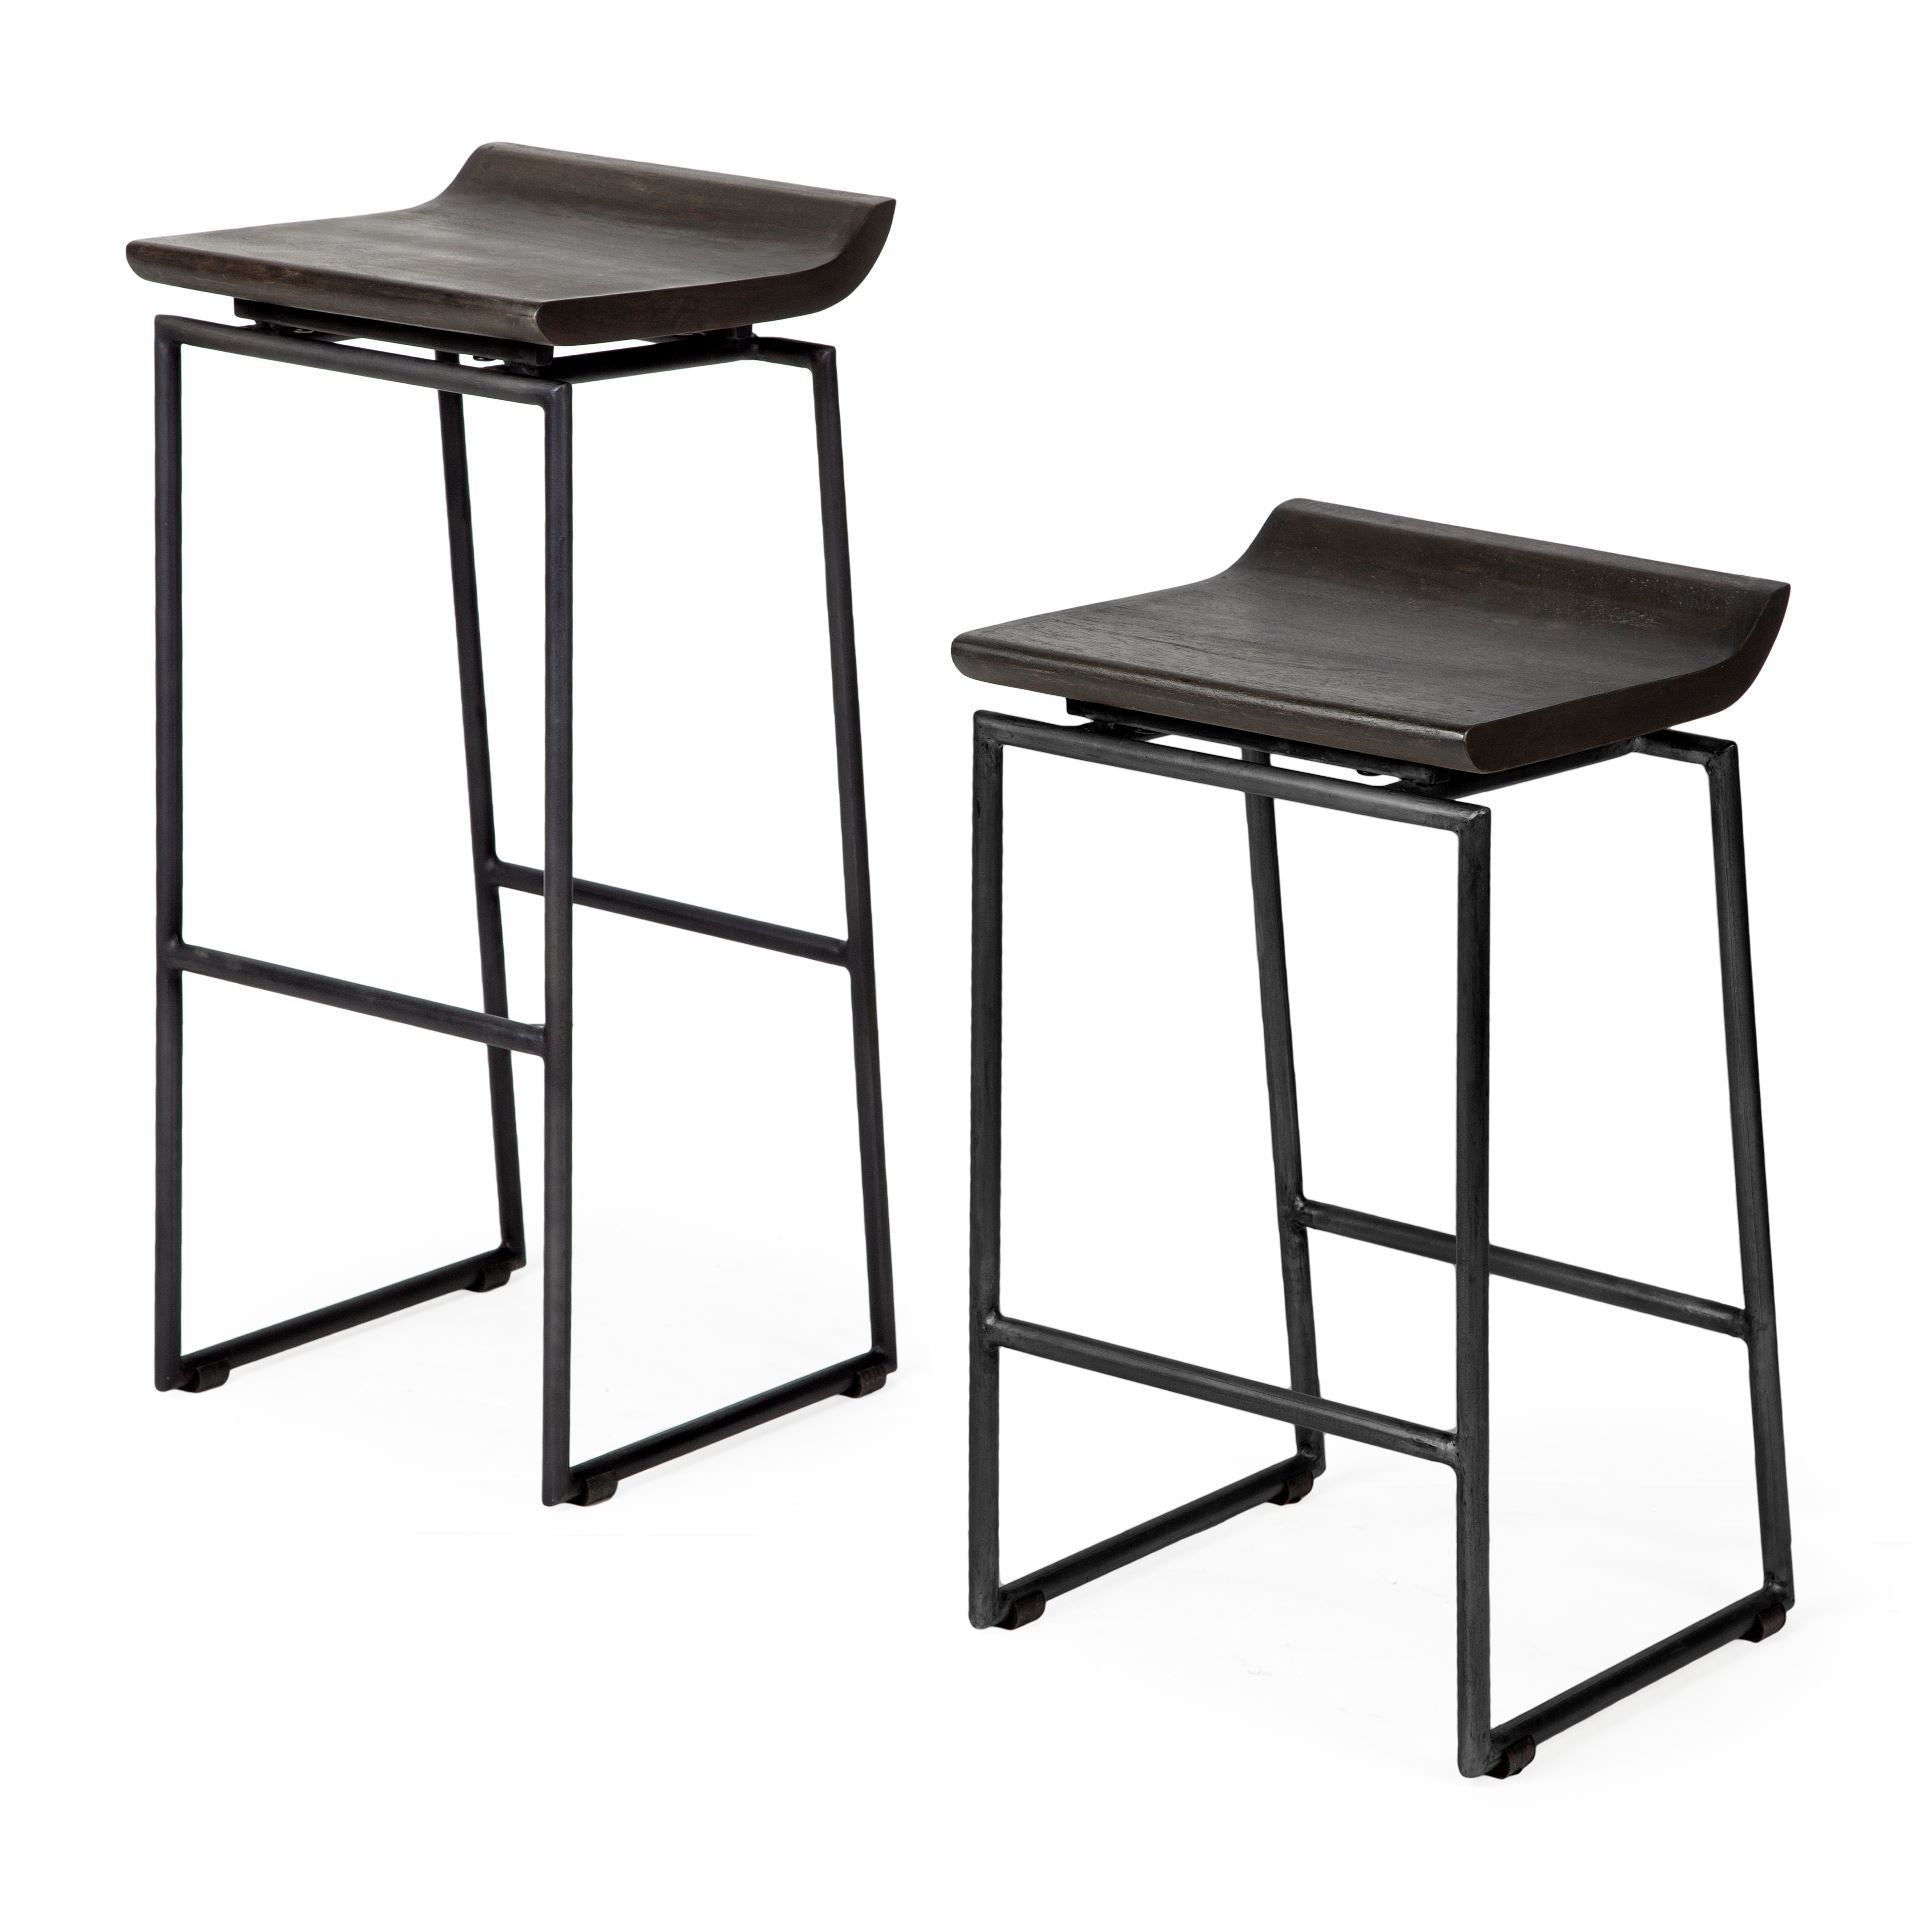 Tremendous Mercana 67992 Givens Iv Bar Stool Matte Black 24X15X14 Gmtry Best Dining Table And Chair Ideas Images Gmtryco